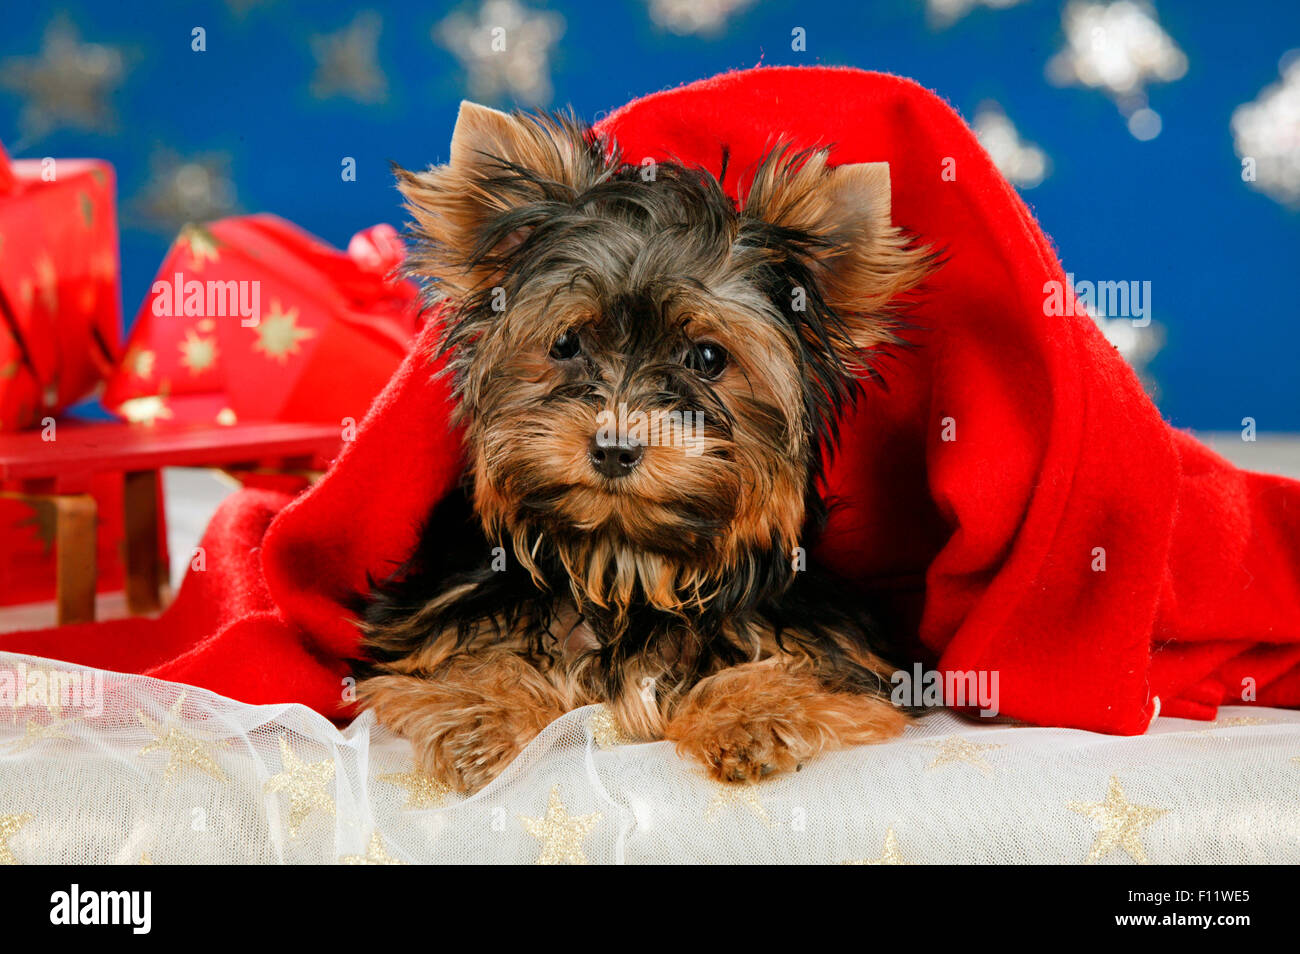 Yorkshire Terrier Christmas Decoration Stock Photo 86708445 Alamy